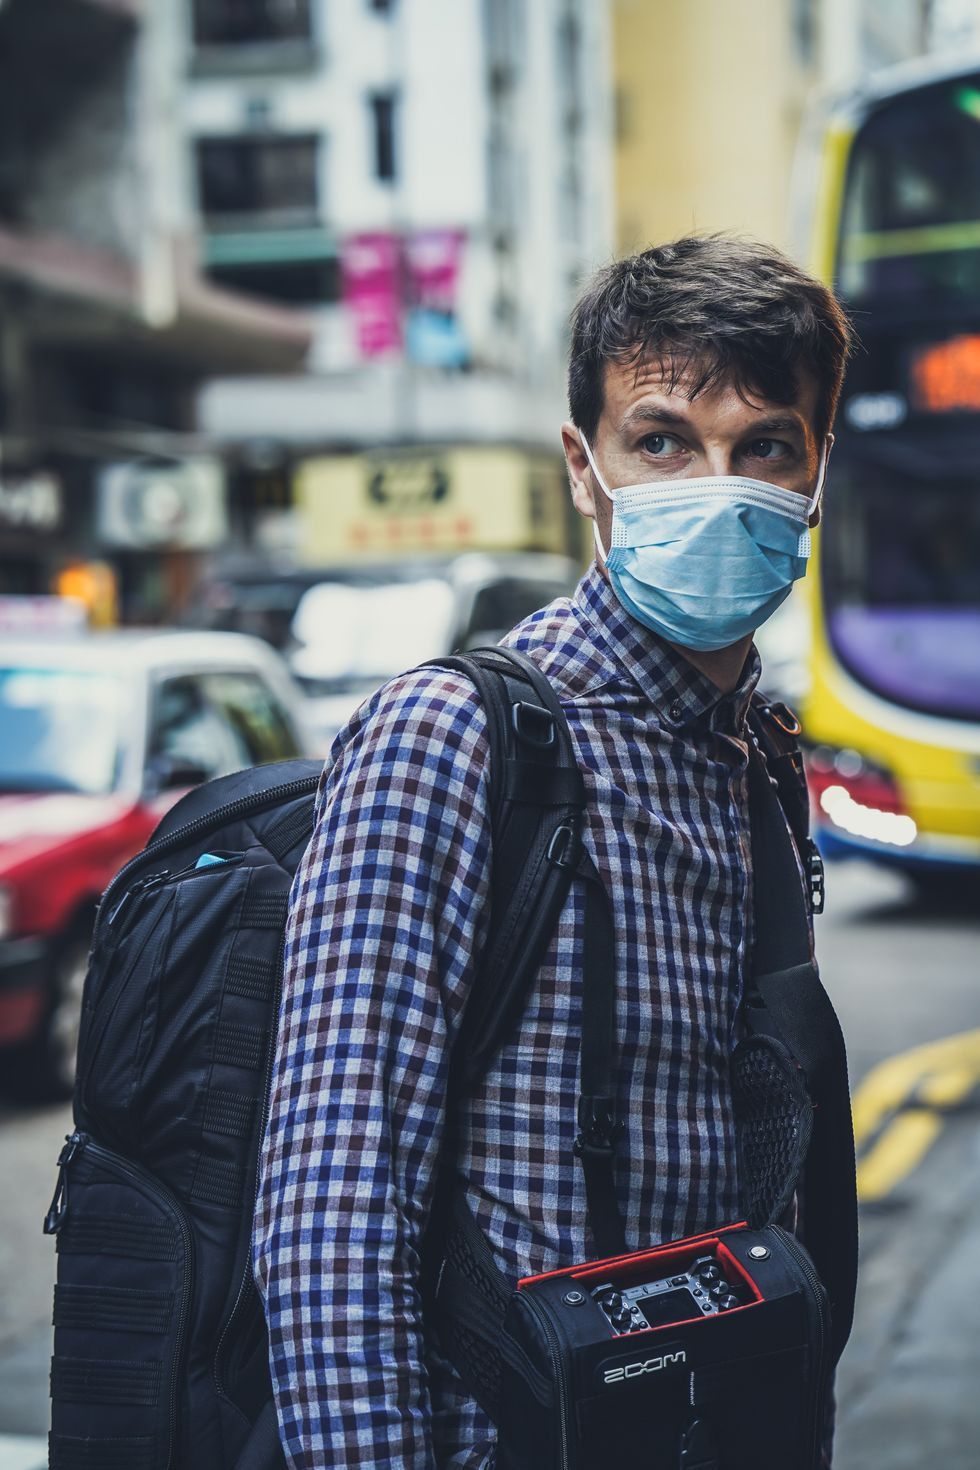 5 Positives To Pandemic Life